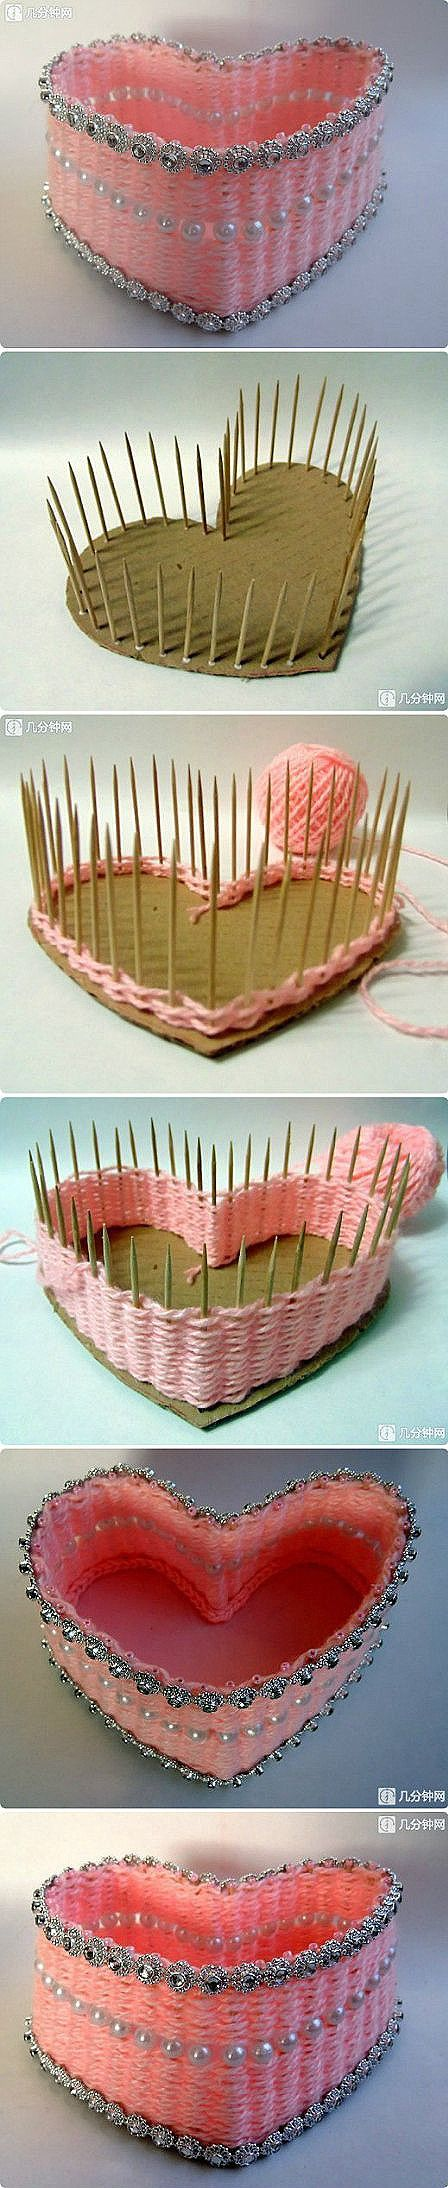 How to make a heart box out of cardboard and skewers!